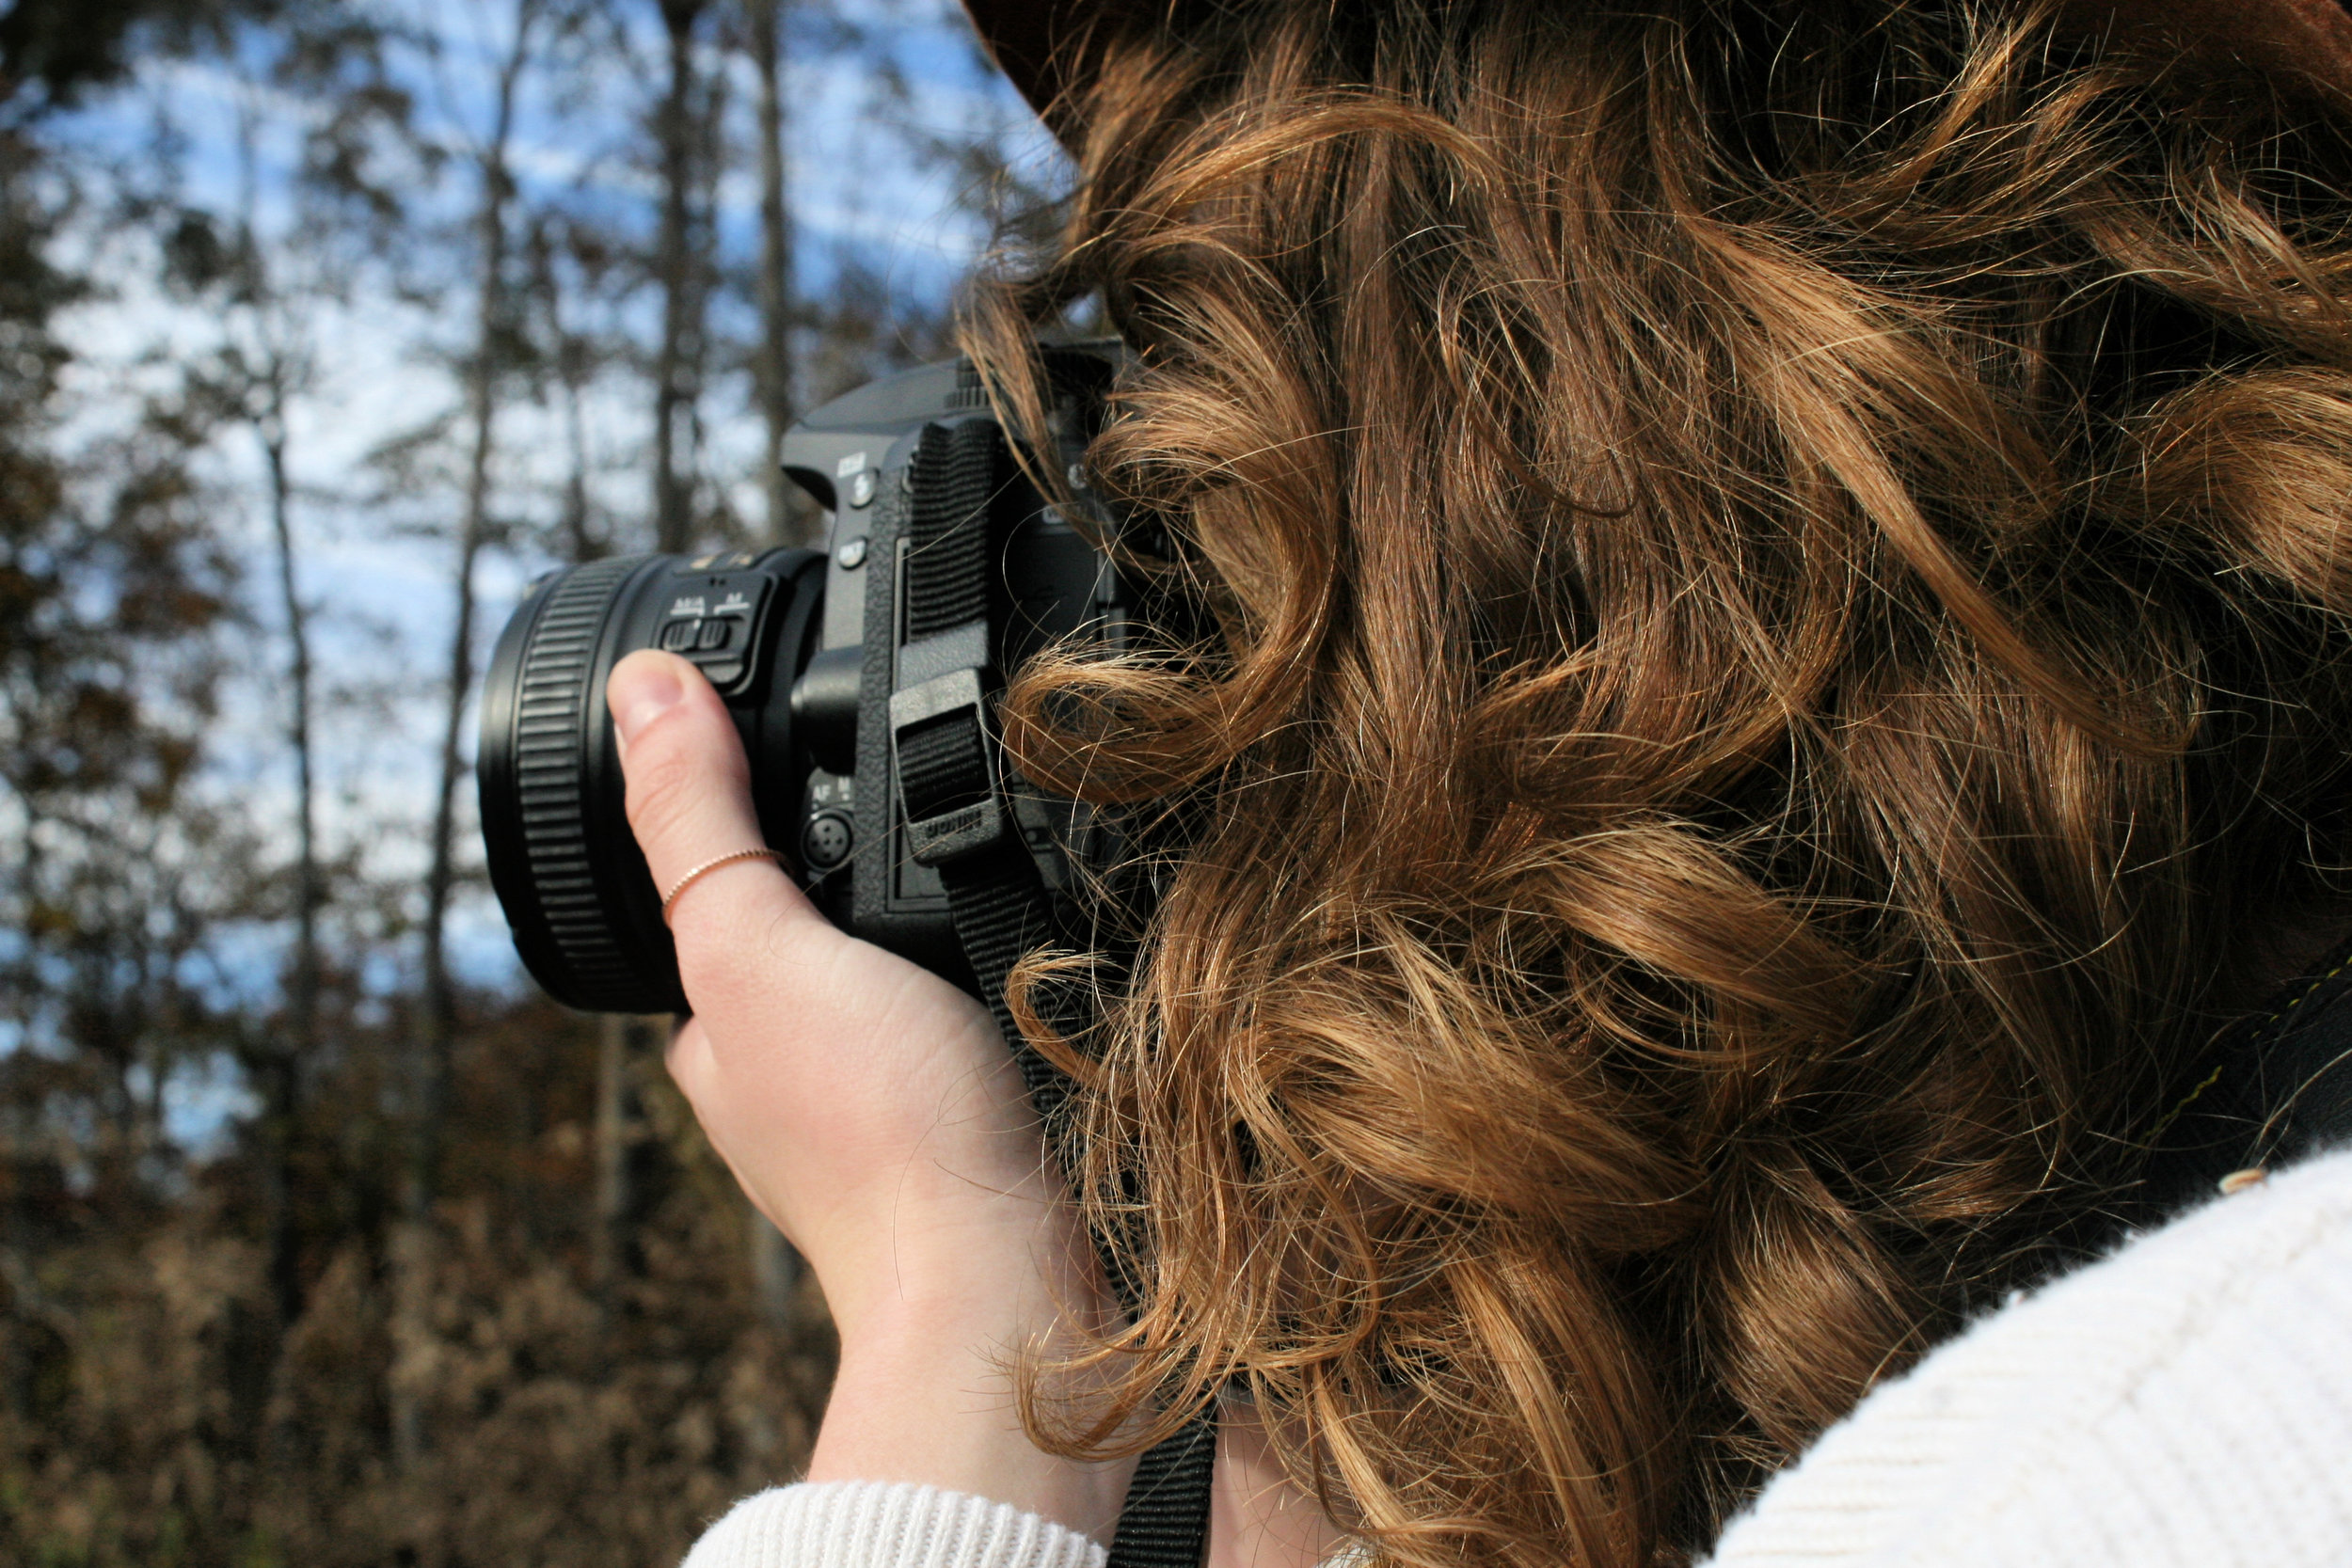 Tip #3: Keep an eye on detail  Detail in photography is very important. Poor quality photos are a no go when taking pictures so make sure the lens is focused and settings of the camera are where they need to be. If photos are coming out blurry make sure that you are keeping a steady hand on the camera.